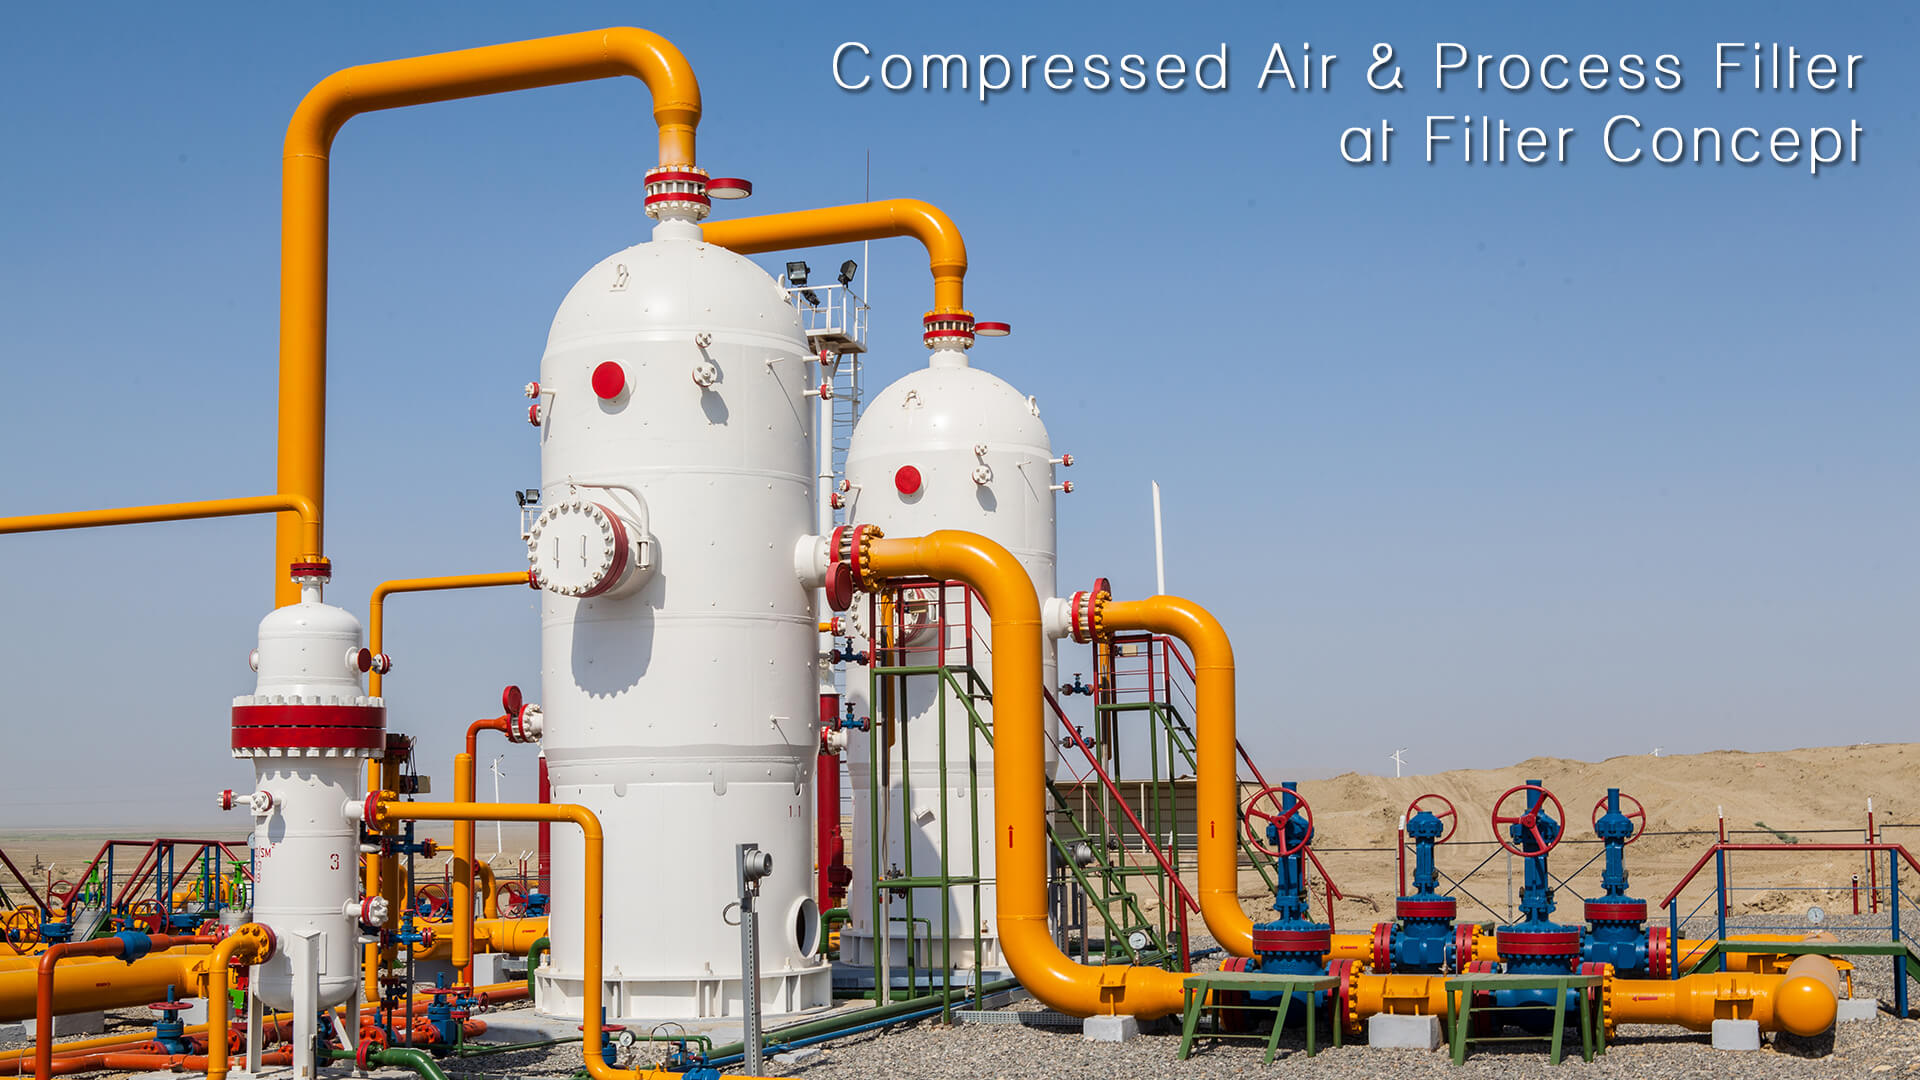 Compressed Air & Process Filter at Filter Concept